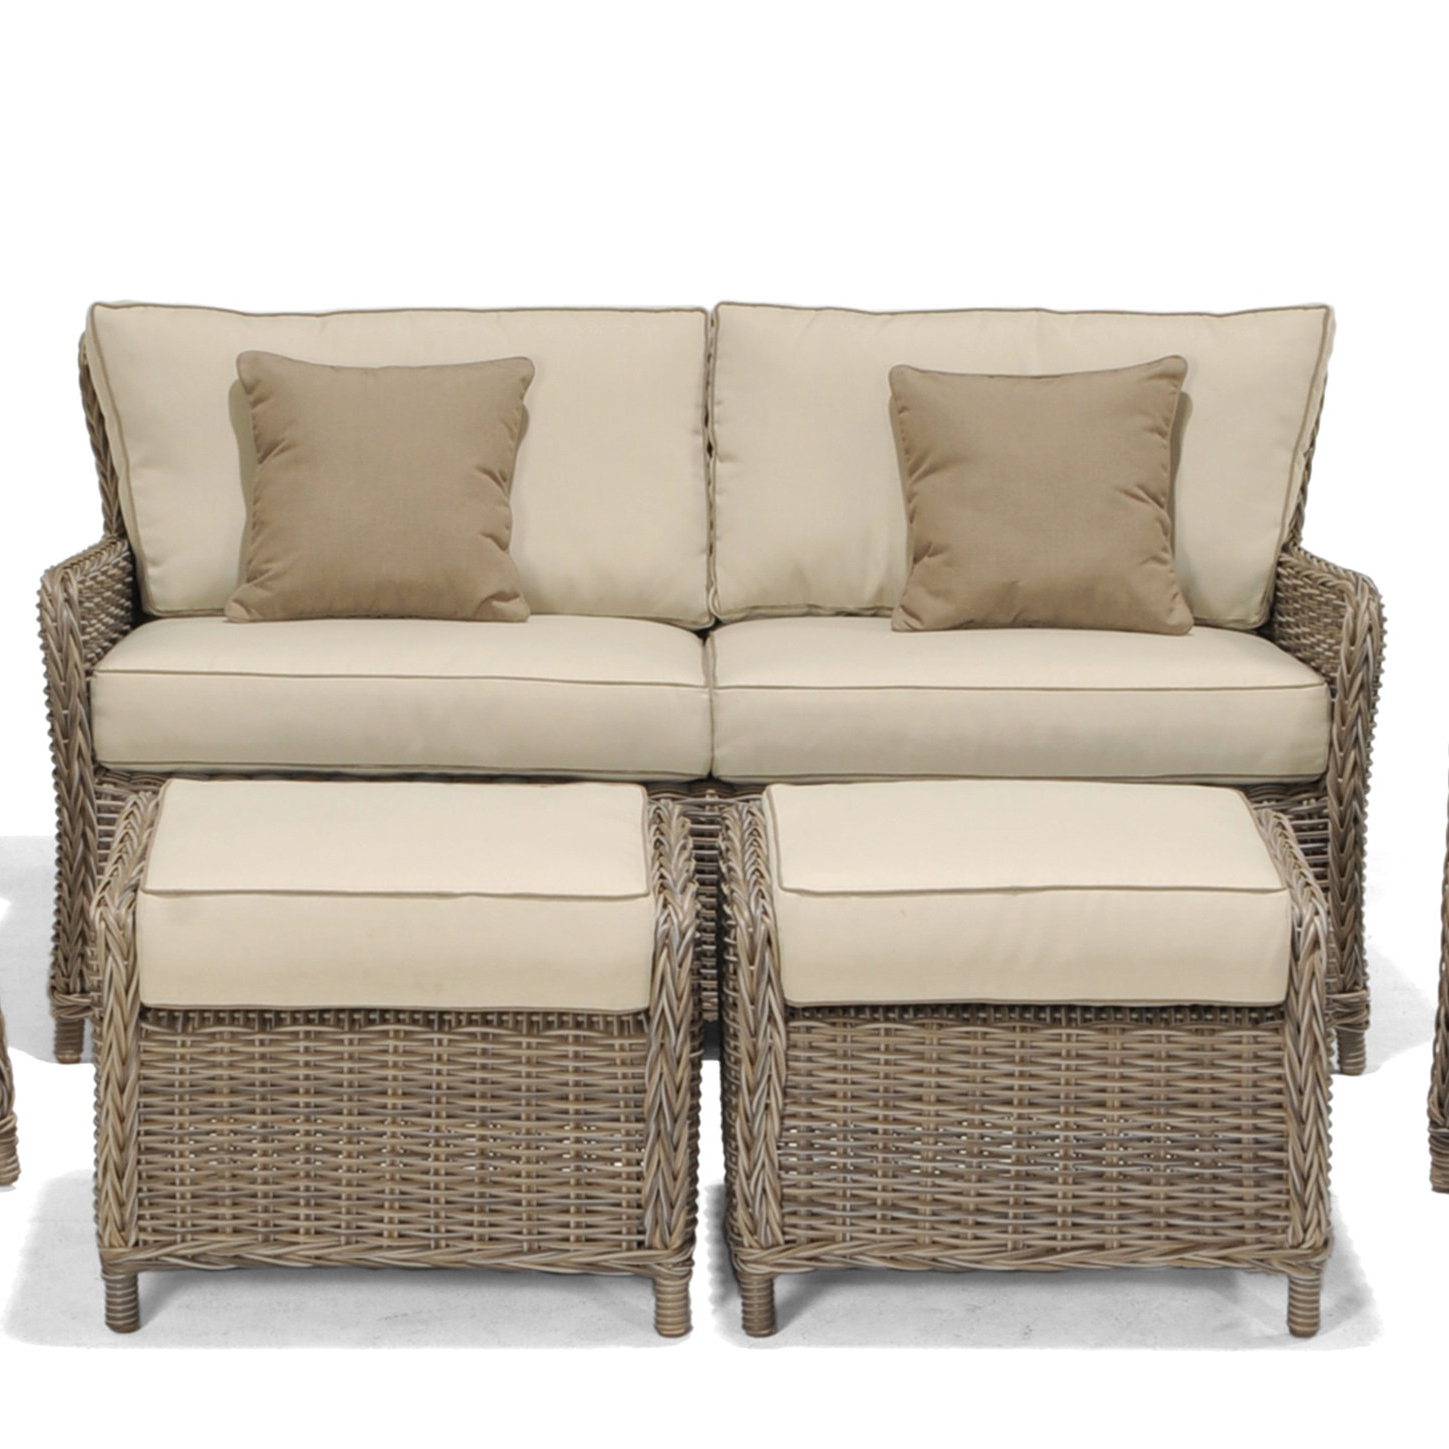 Avadi Outdoor Sofa & Ottomans 3 Piece Set Regarding Latest Avadi Outdoor Sofas & Ottomans 3 Piece Set (Gallery 1 of 25)